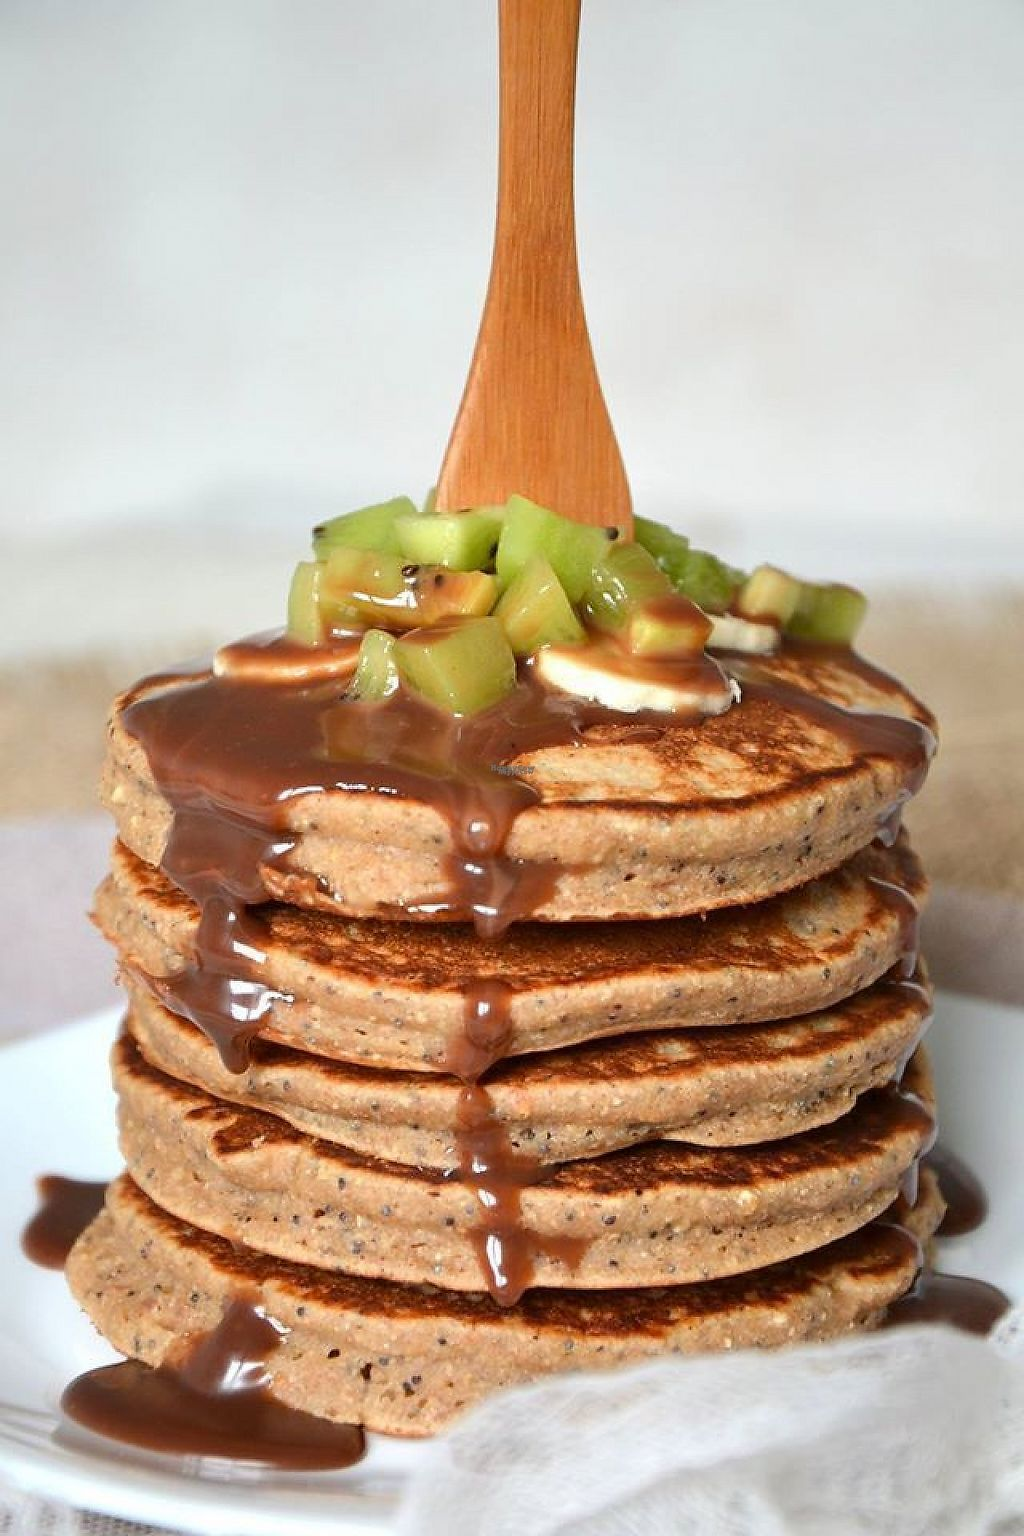 "Photo of La Vie Claire  by <a href=""/members/profile/community"">community</a> <br/>vegan hazelnut pancakes  <br/> February 4, 2017  - <a href='/contact/abuse/image/68774/221807'>Report</a>"